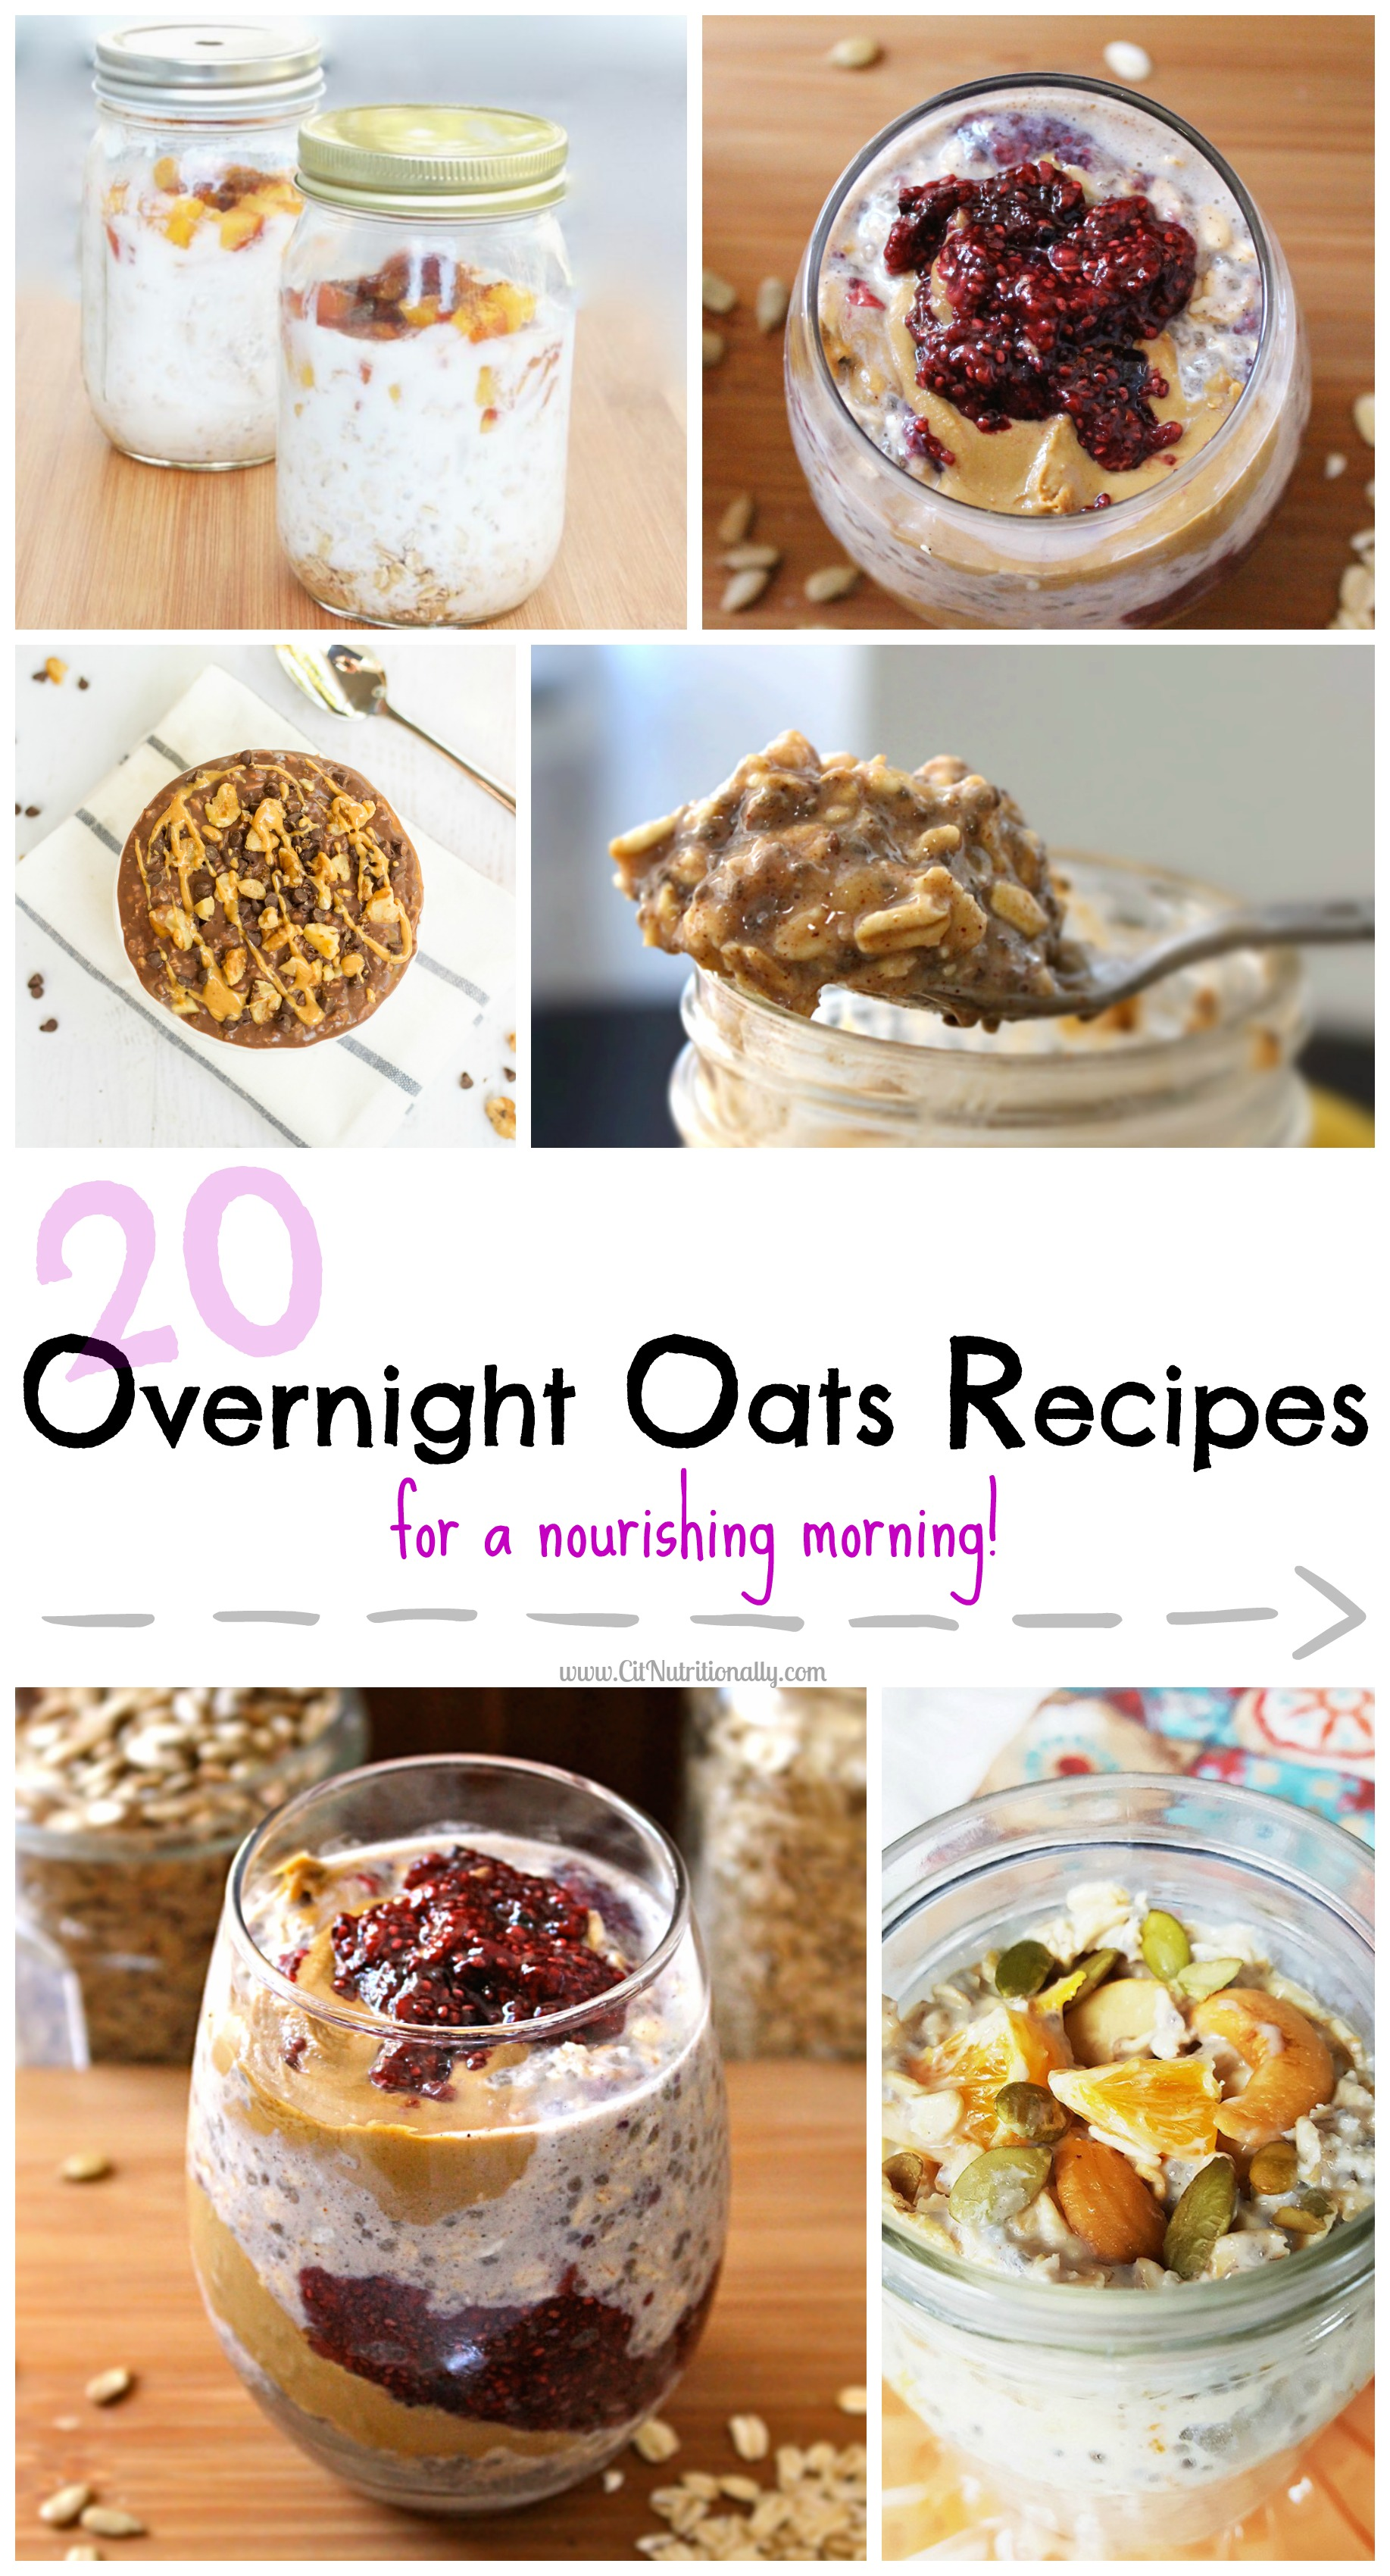 20 Overnight Oats Recipes for a Nourishing Morning | C it Nutritionally